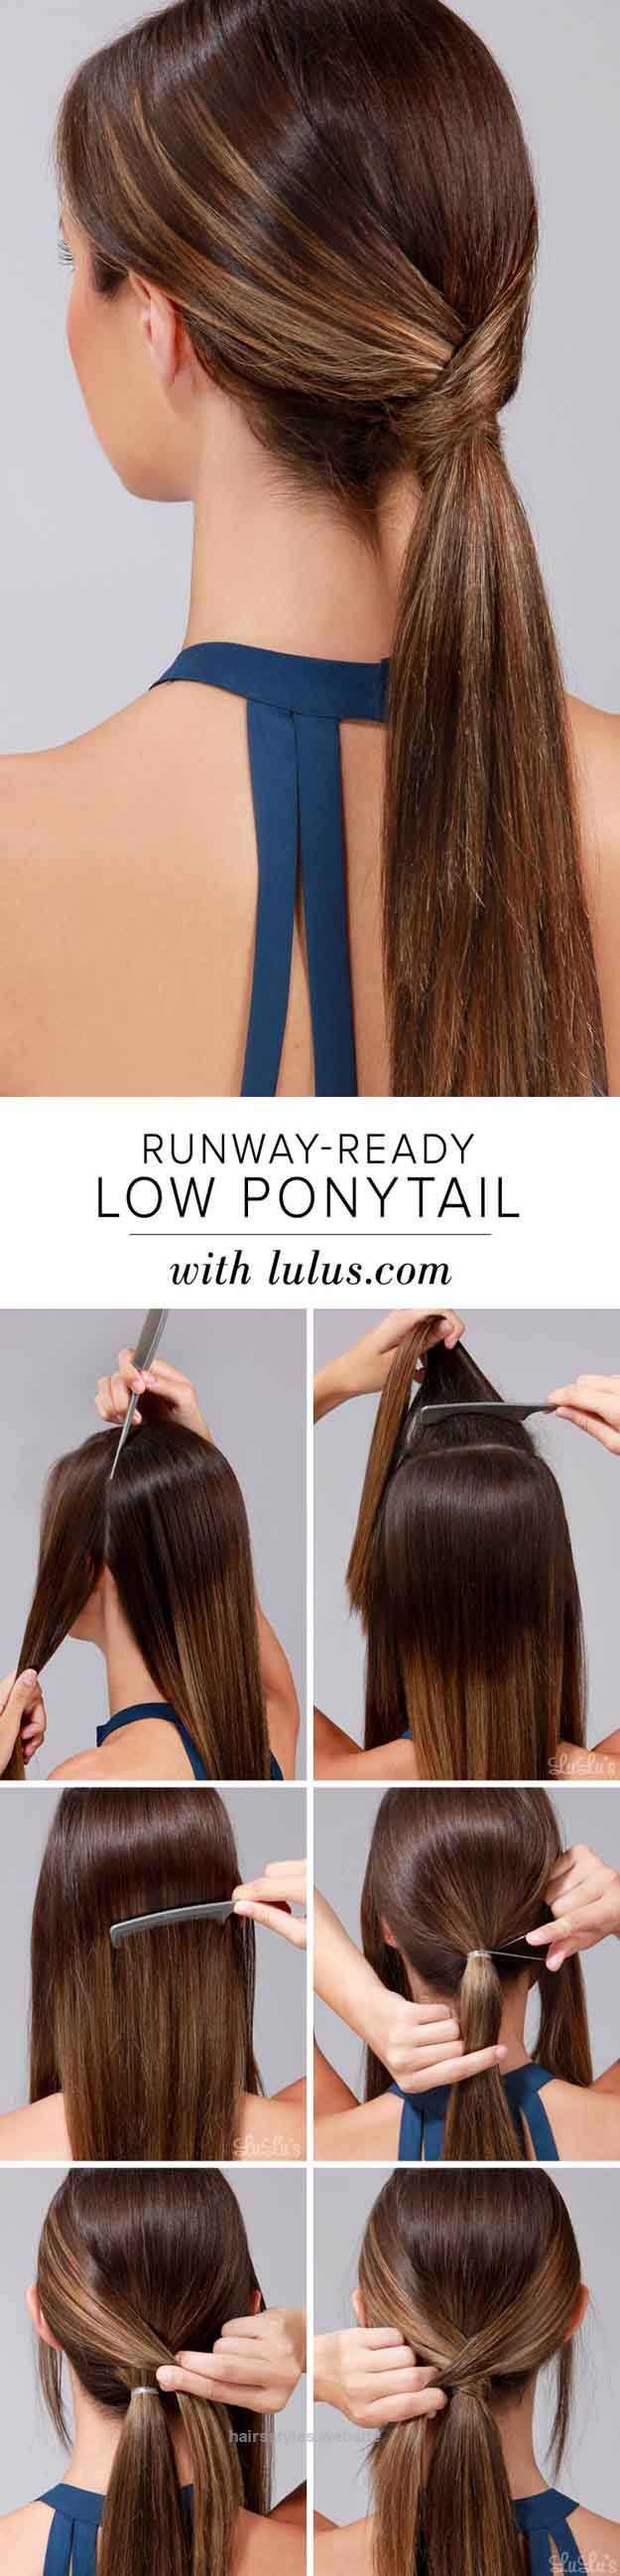 Quick and easy hairstyles for straight hair how to runway ready